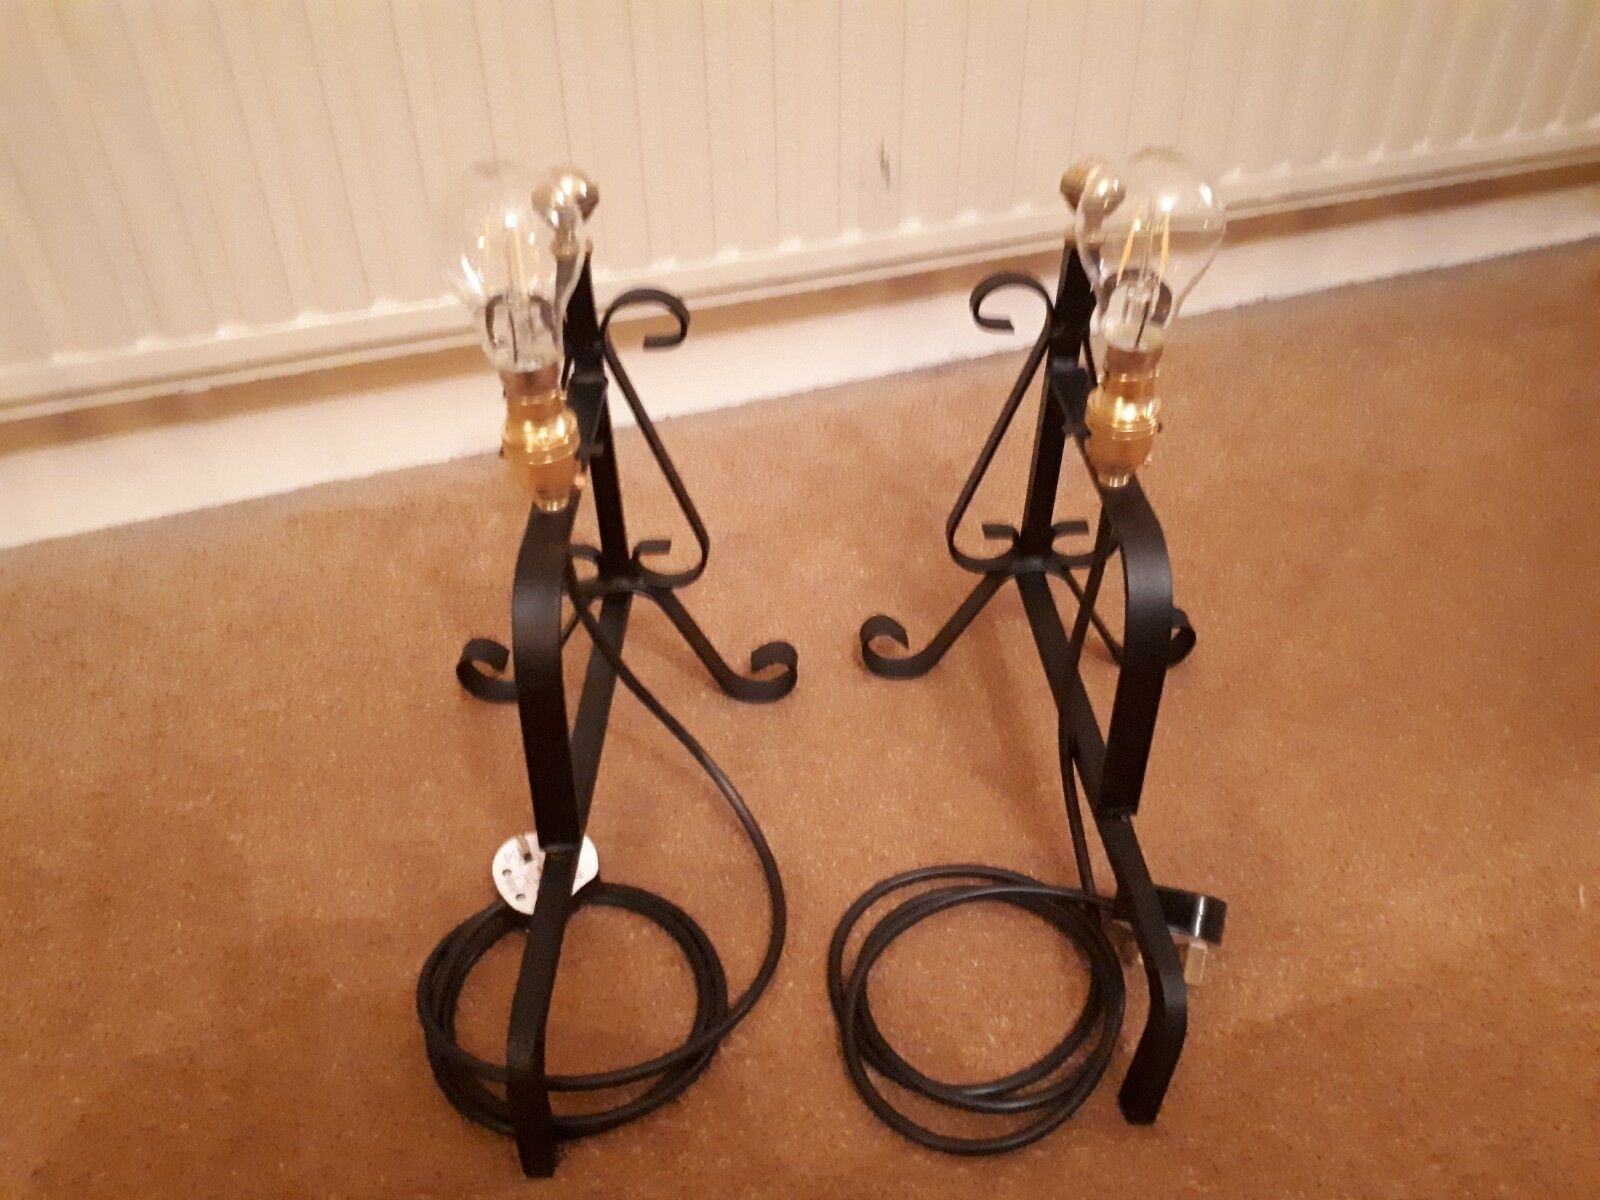 A PAIR OF VERY RARE UNIQUE ( ONE OFF ) WROUGHT IRON, FIRE DOG TABLE LAMPS.